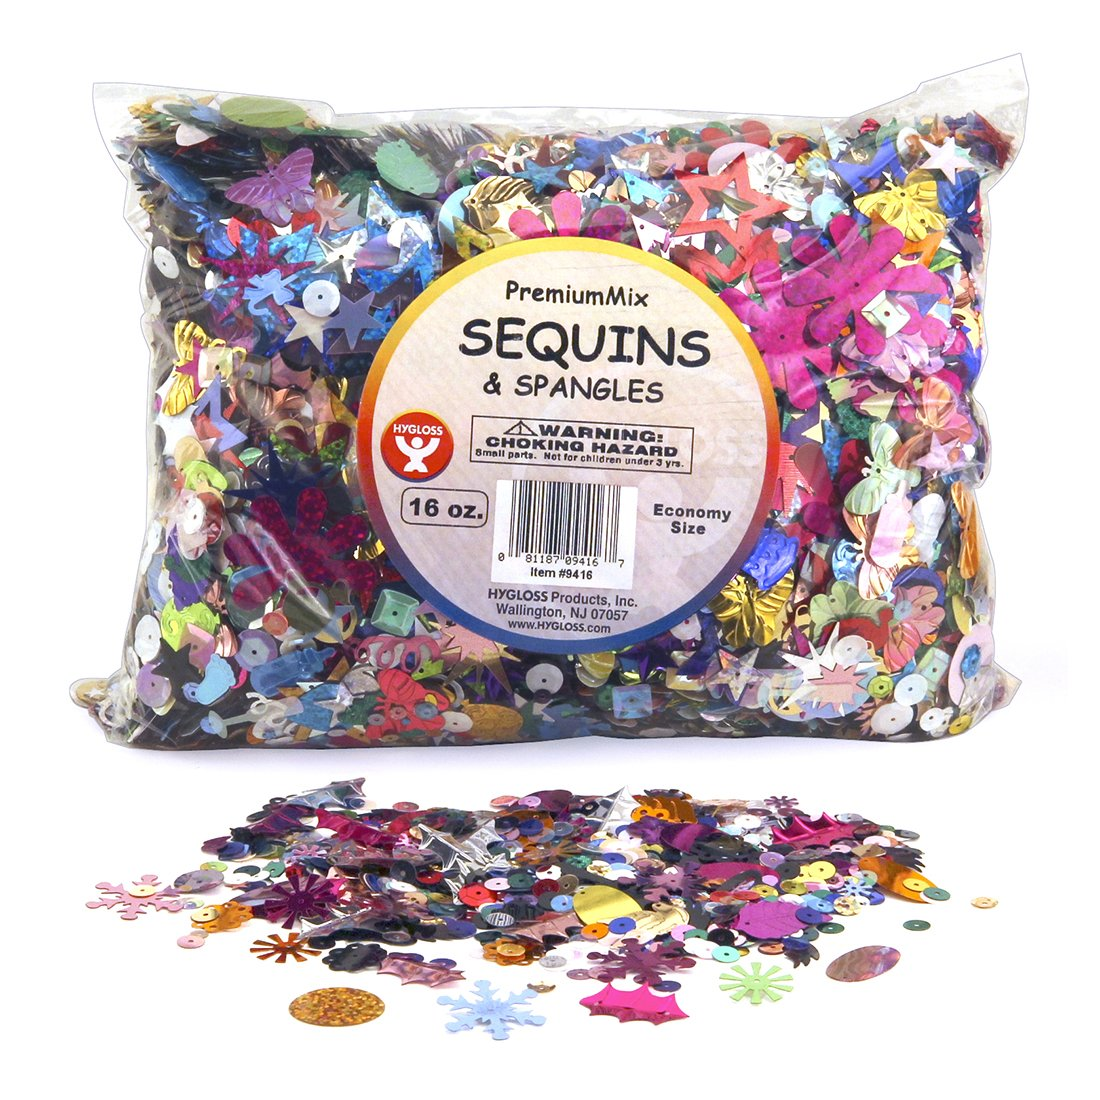 Hygloss Products Sequins and Spangles Variety Pack- Add Shimmer and Shine to Any Surface- 16 Ounce Bag by Hygloss